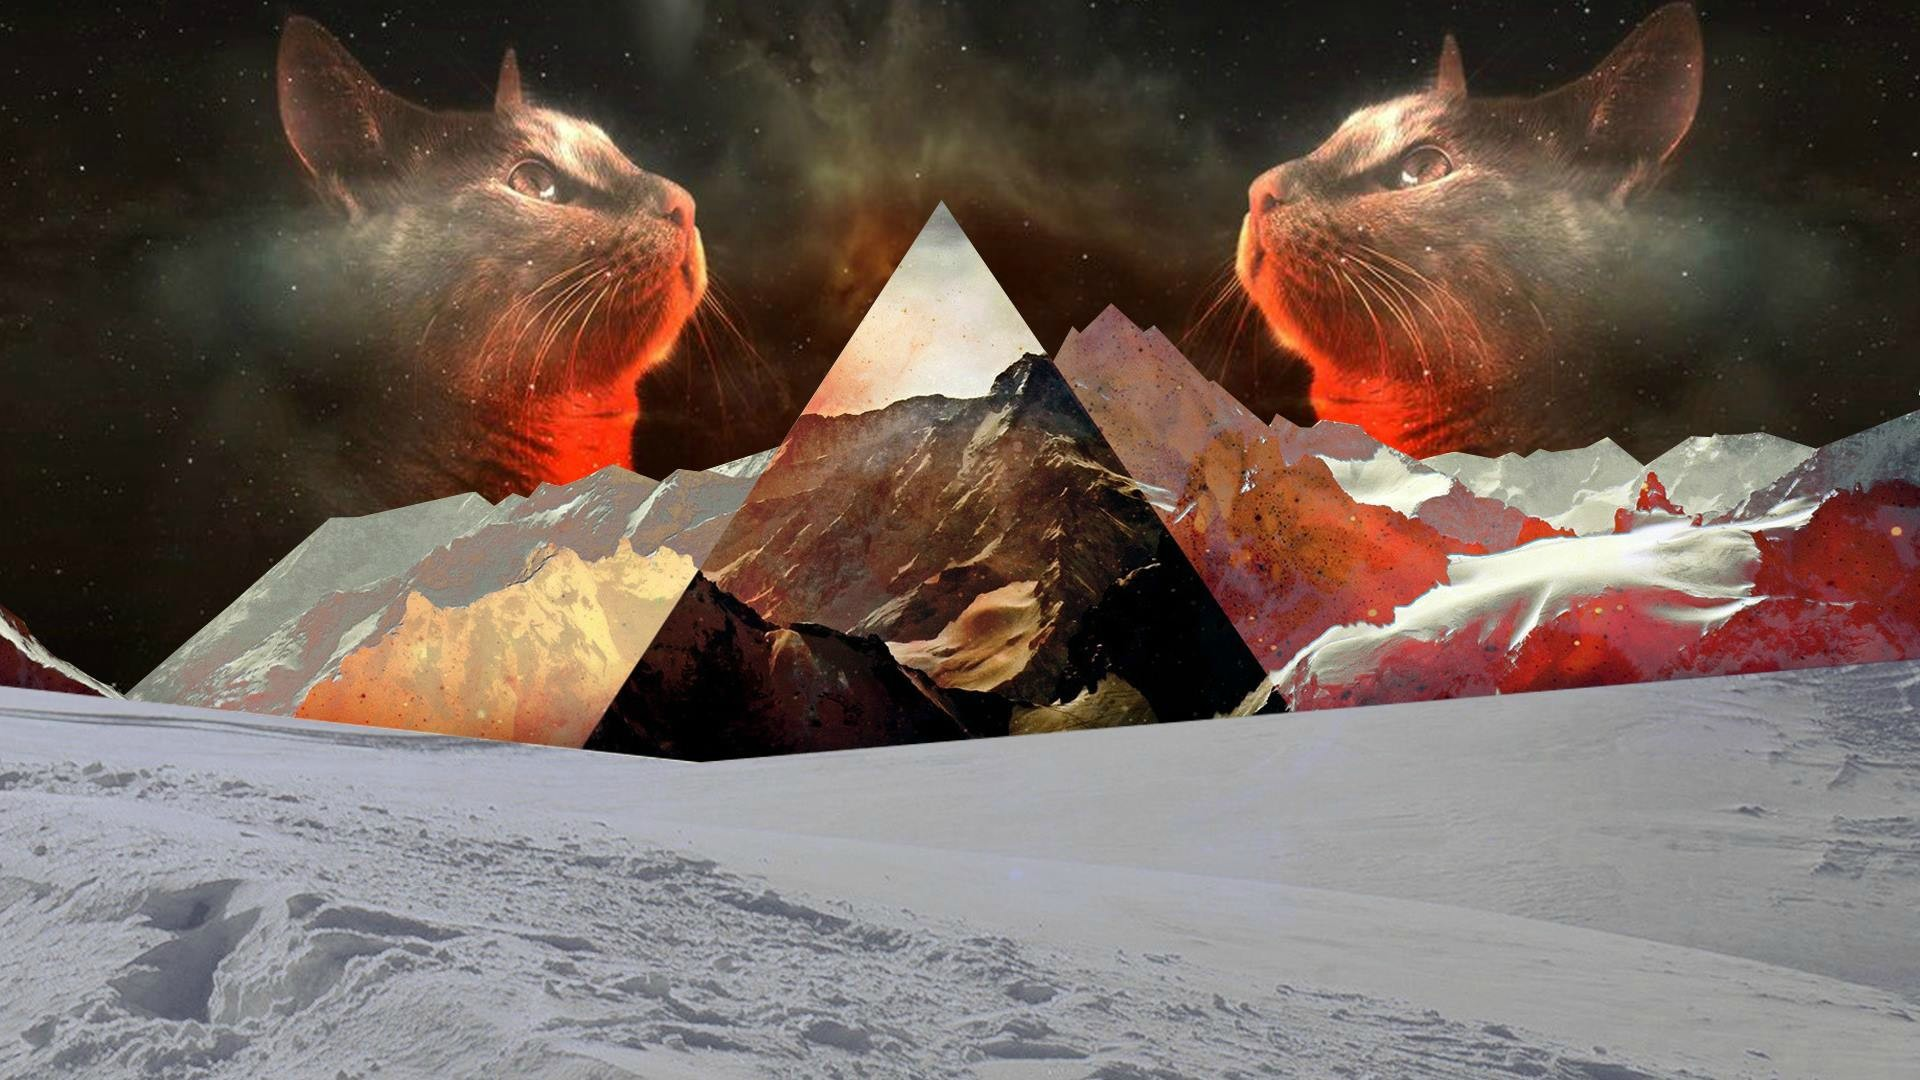 cat katze dreieck berg mountain triangle